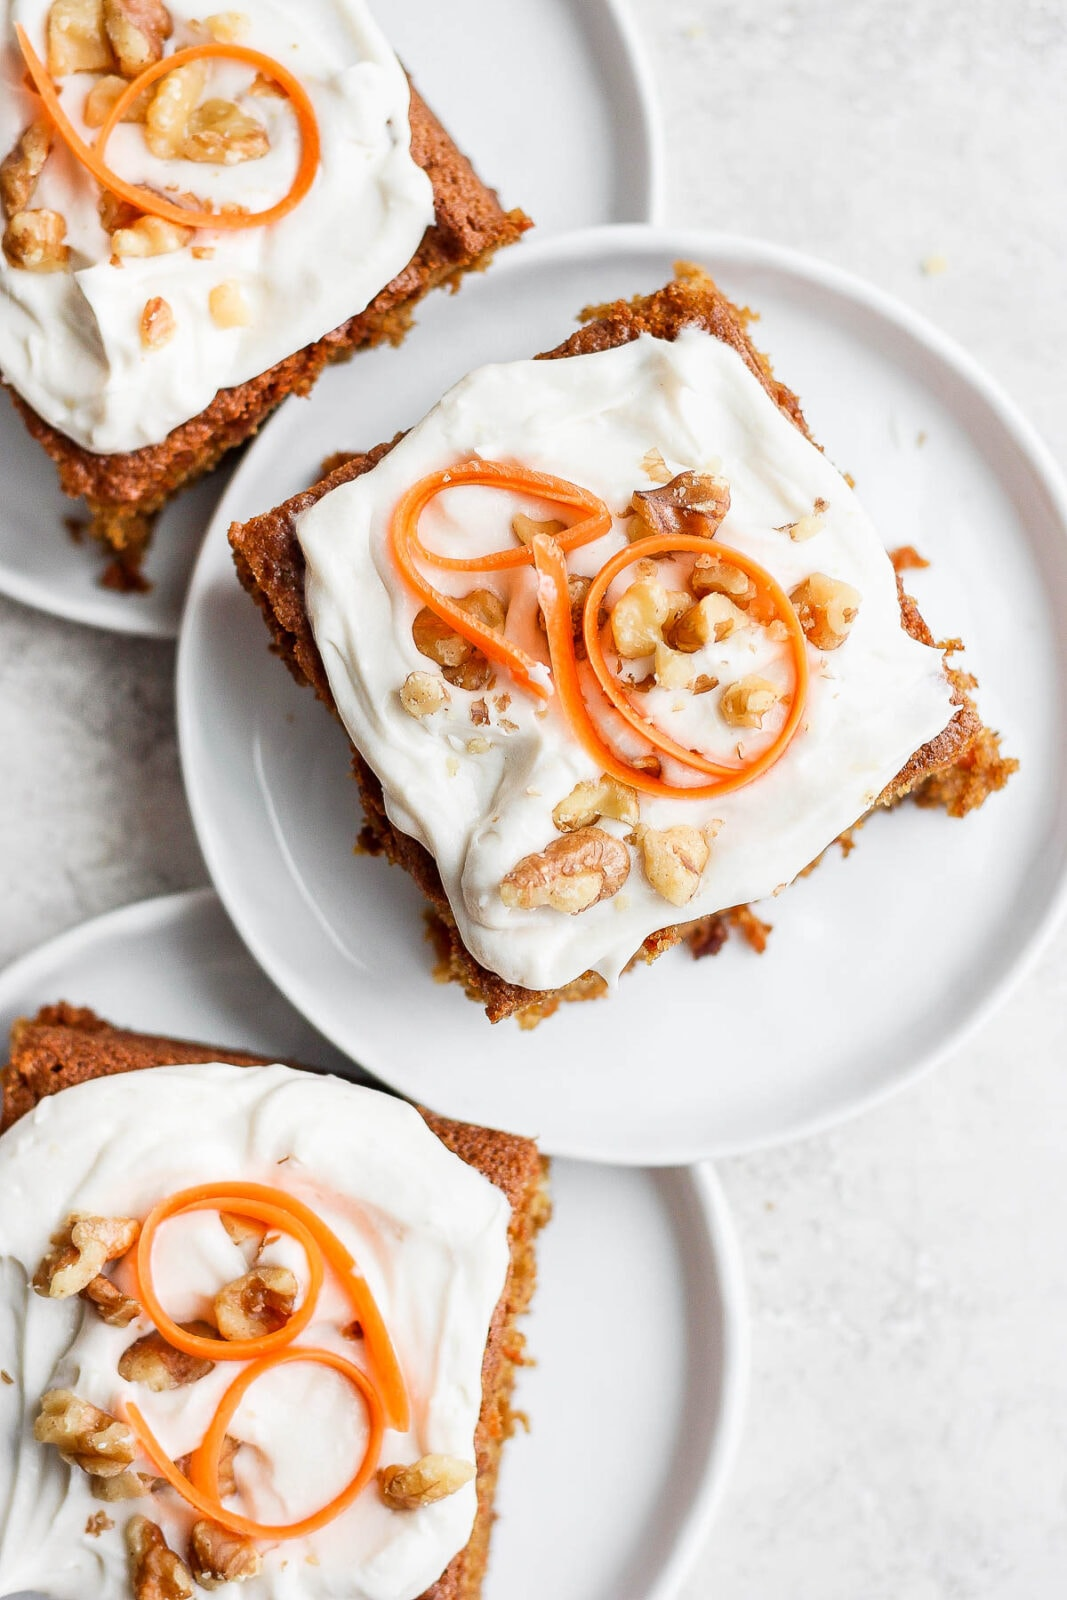 Three slices of gluten free carrot cake on plates.